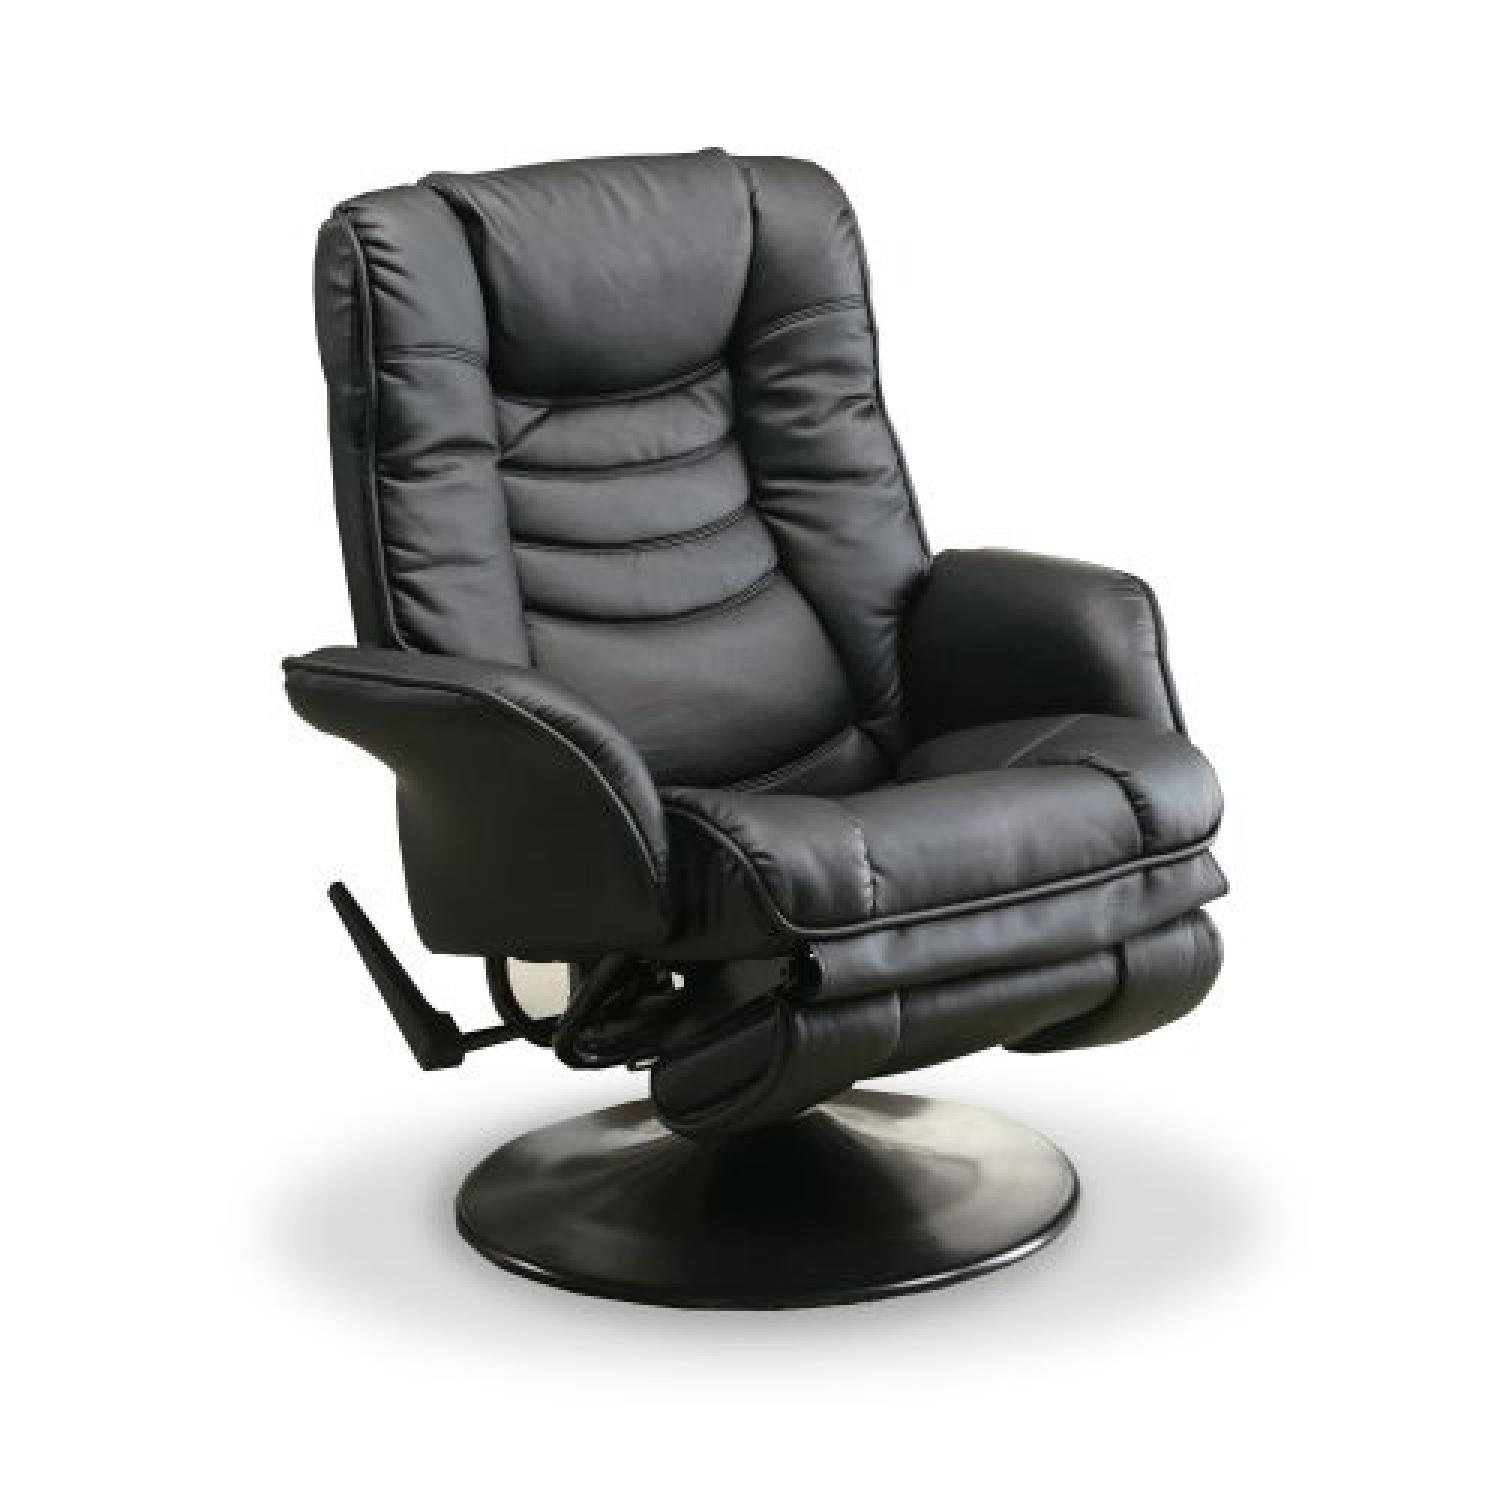 Swivel Recliner w/ Padded Cushions in Black Color Leatherette